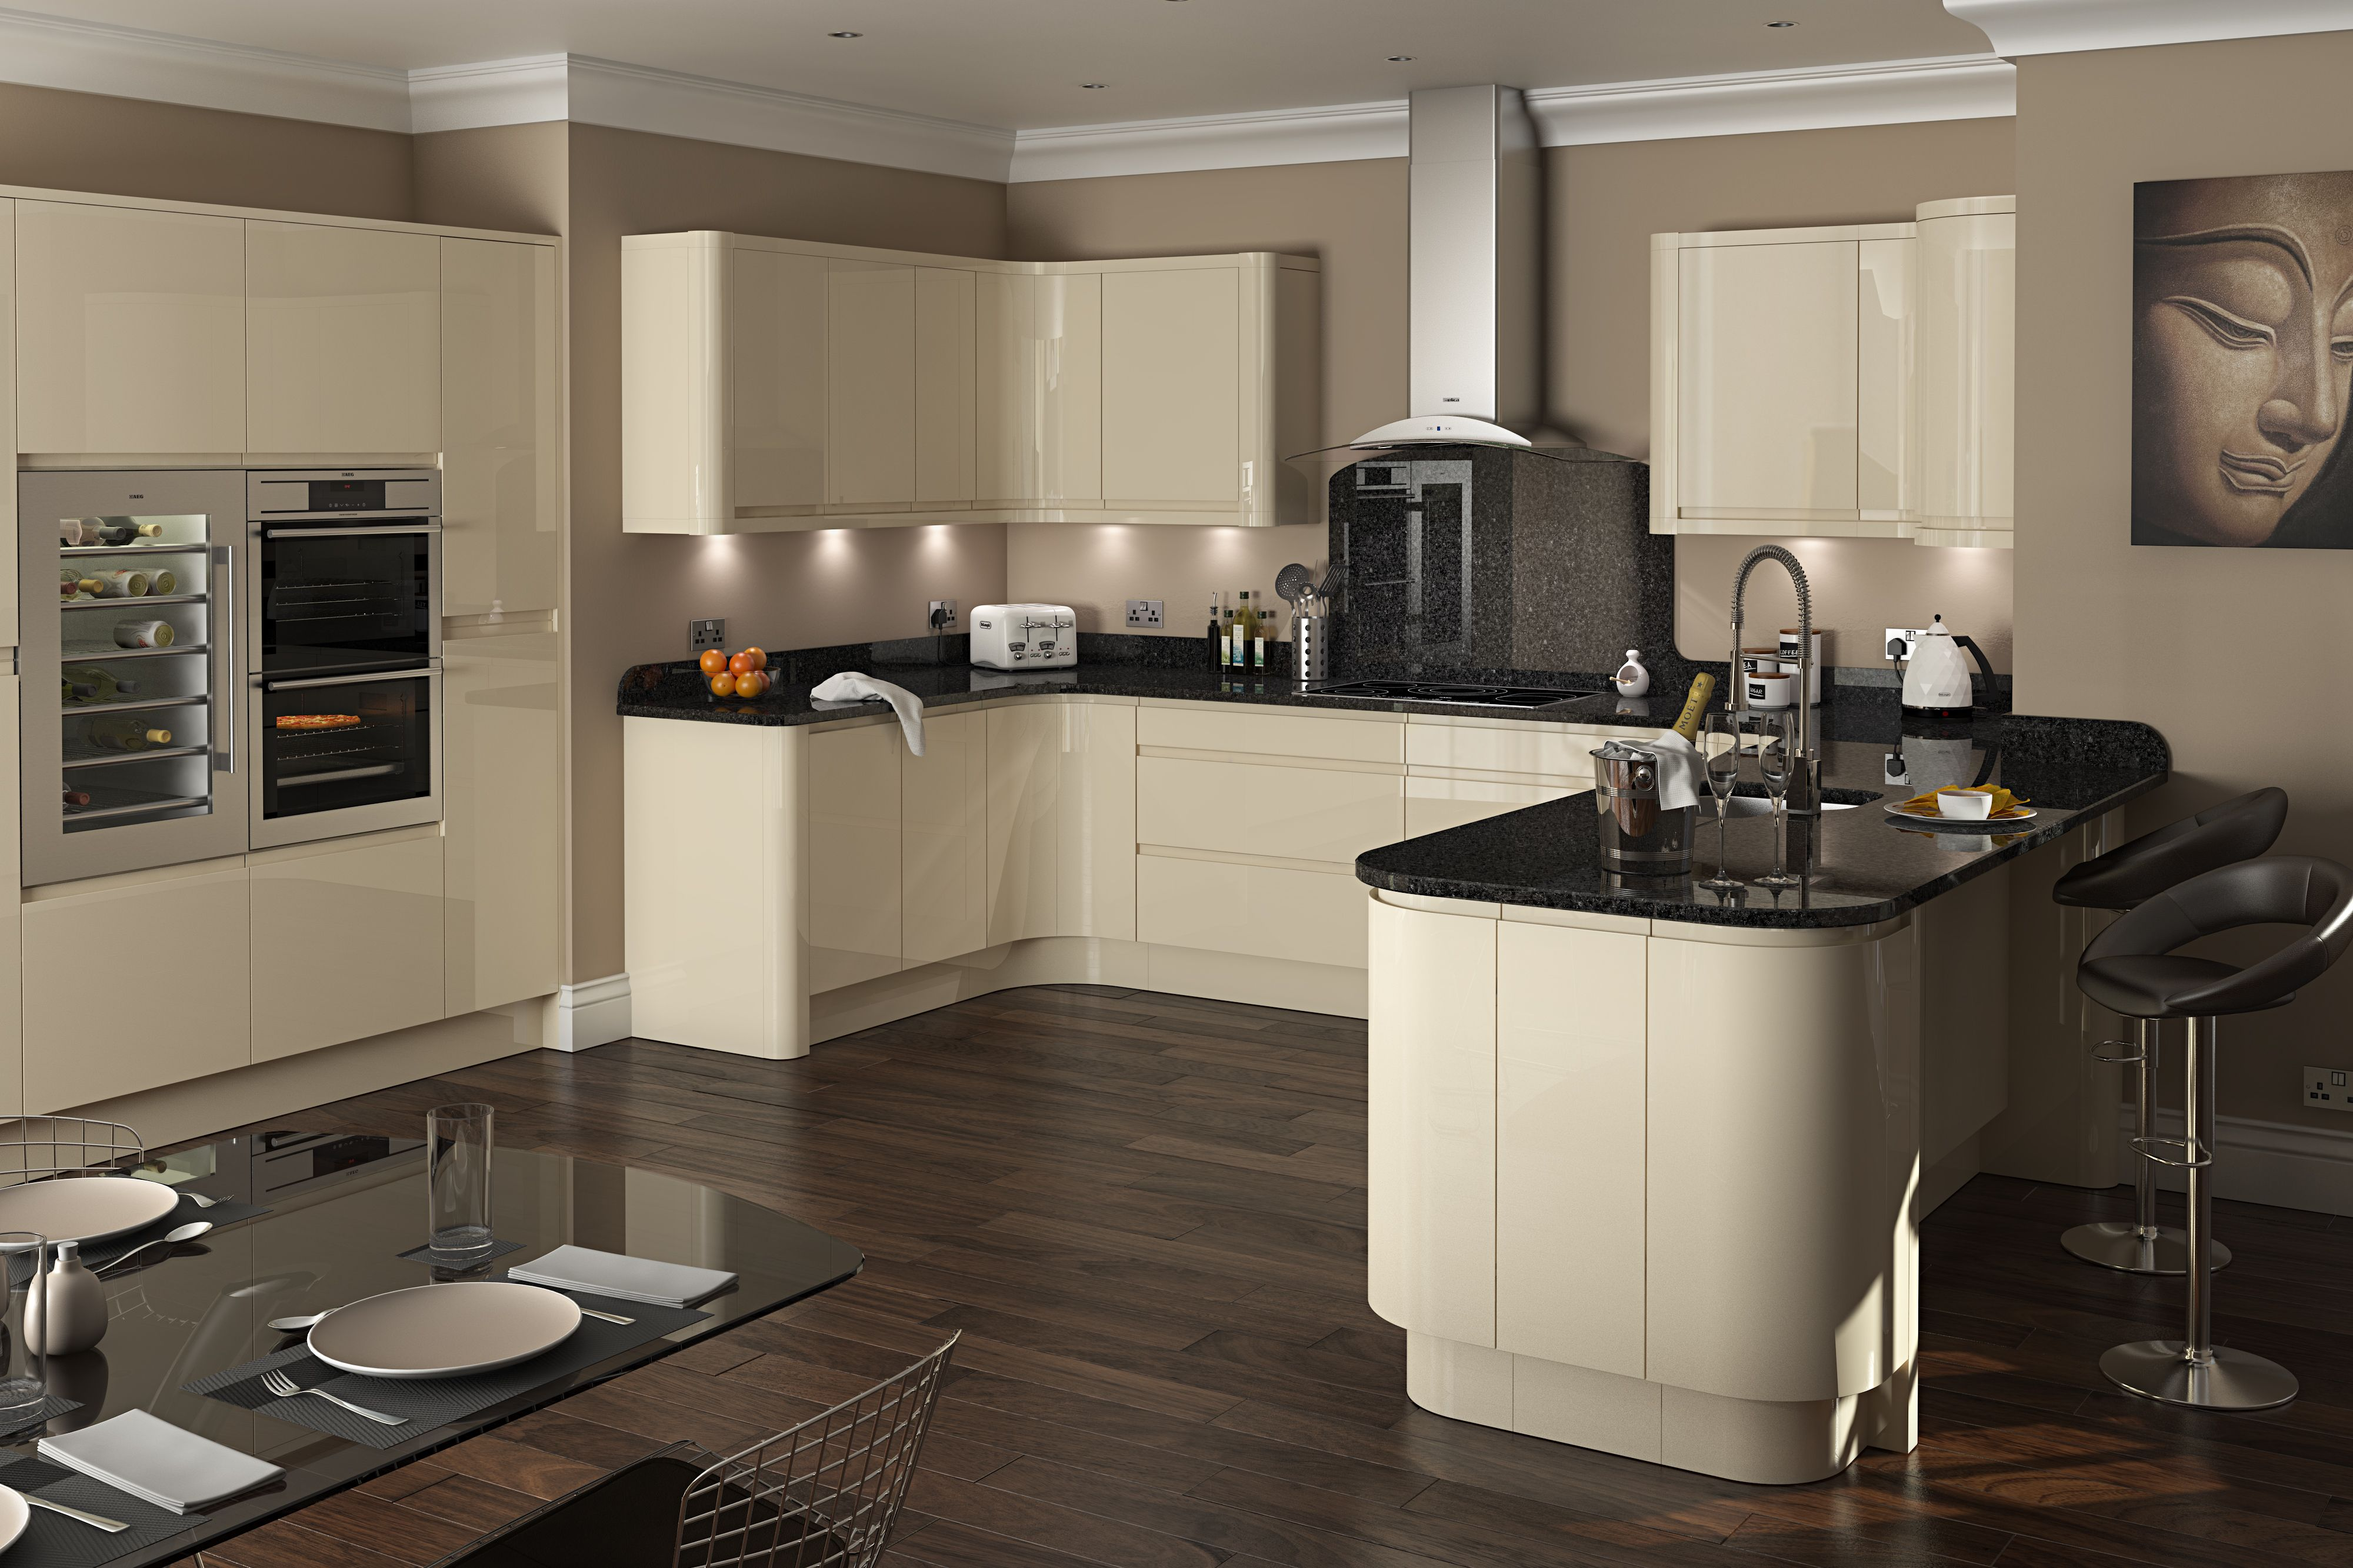 Take your kitchen to next level with these modern kitchen designs